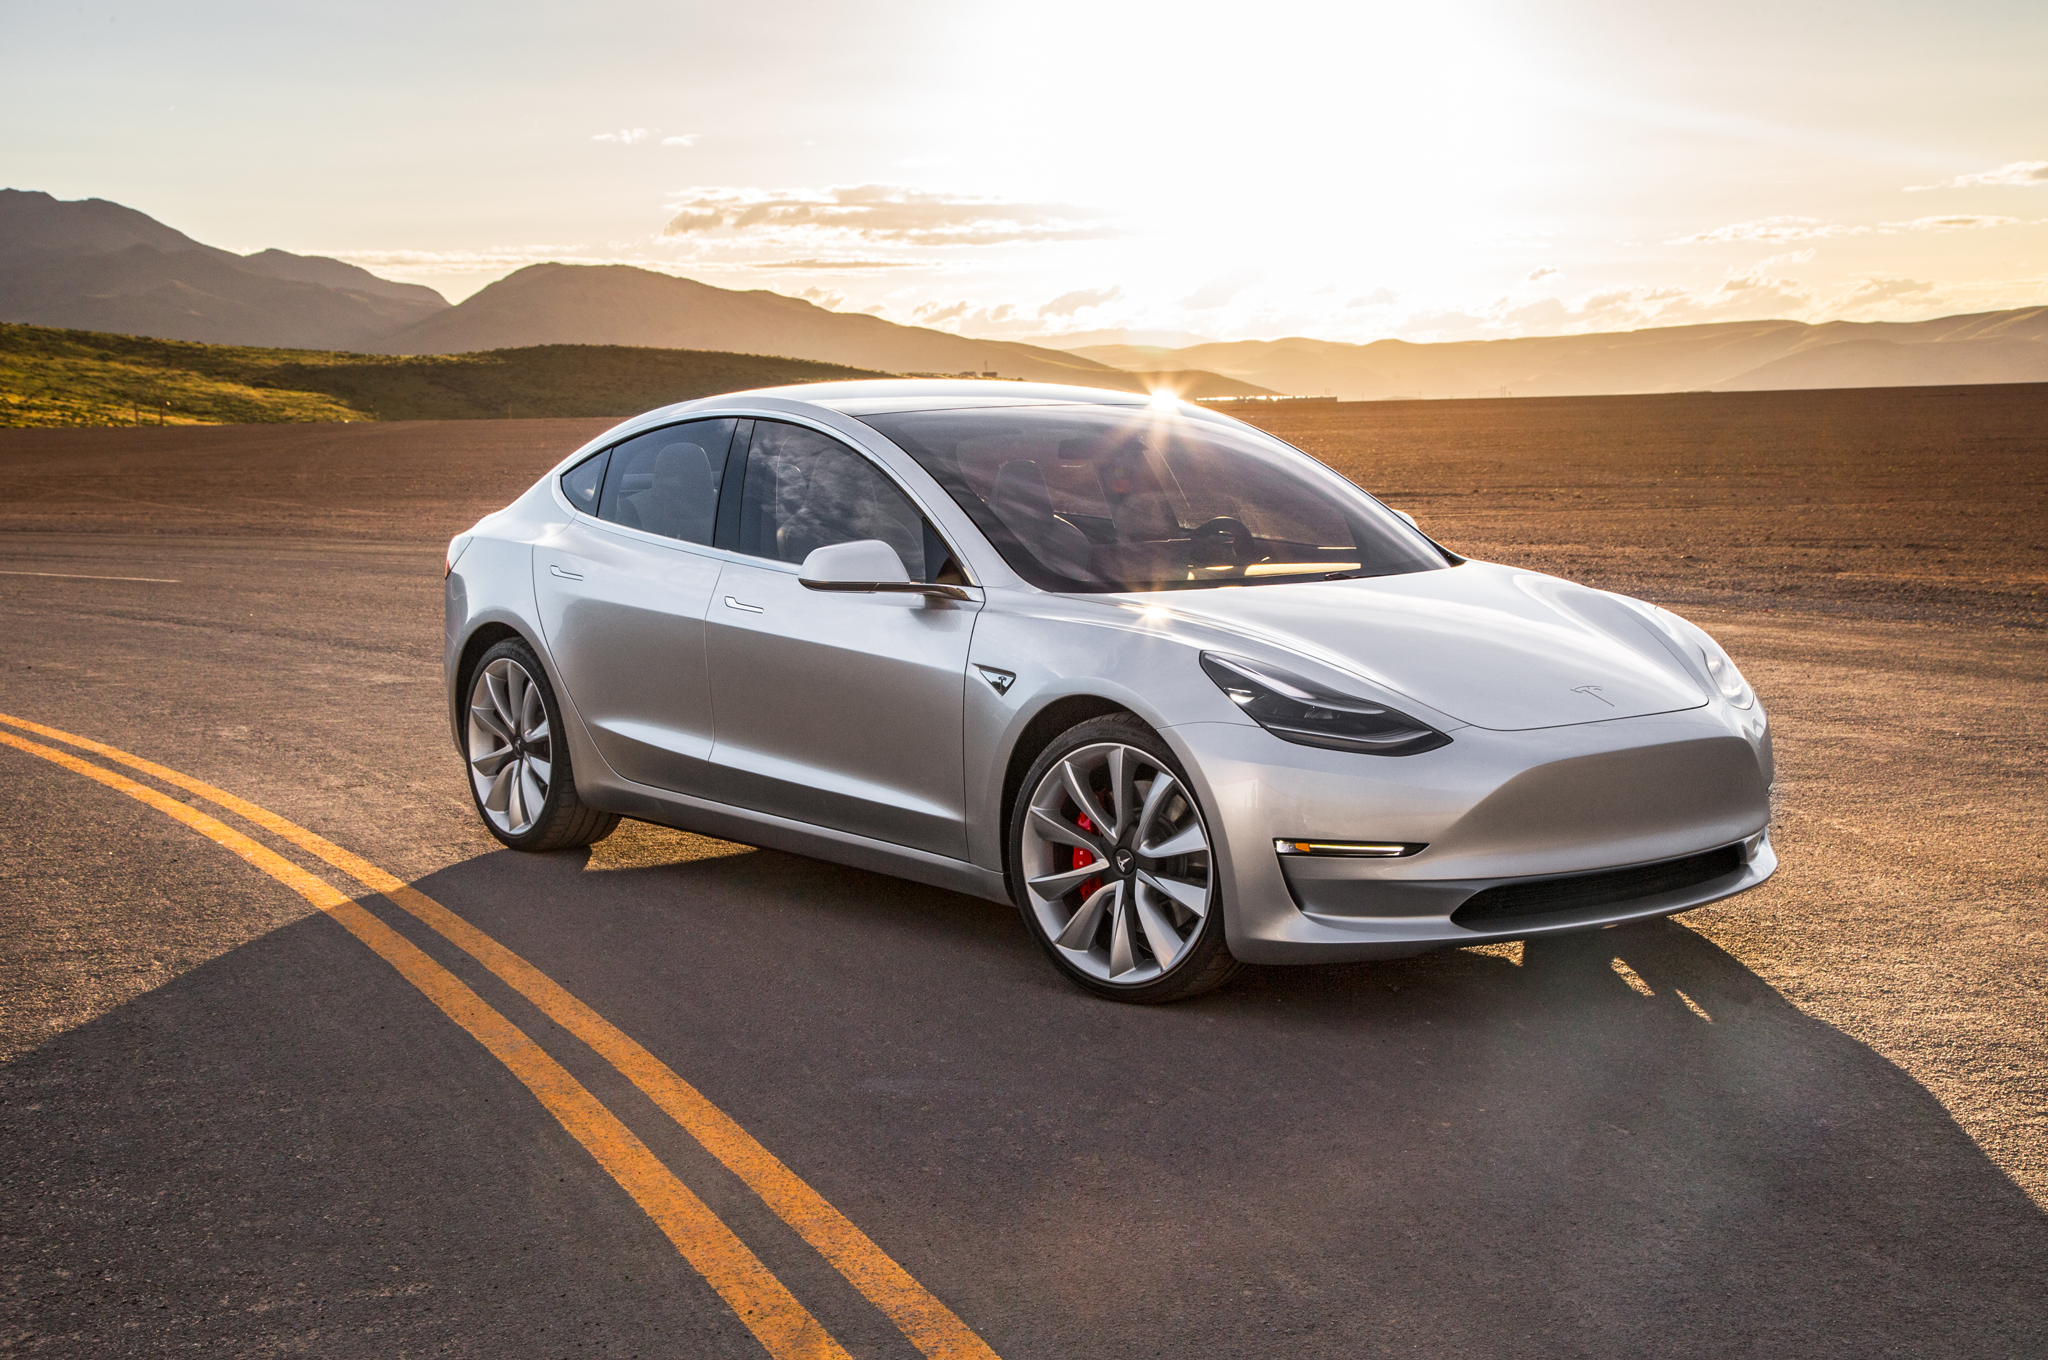 Watch: Tesla running 1000 km with one battery and breaking a new record!